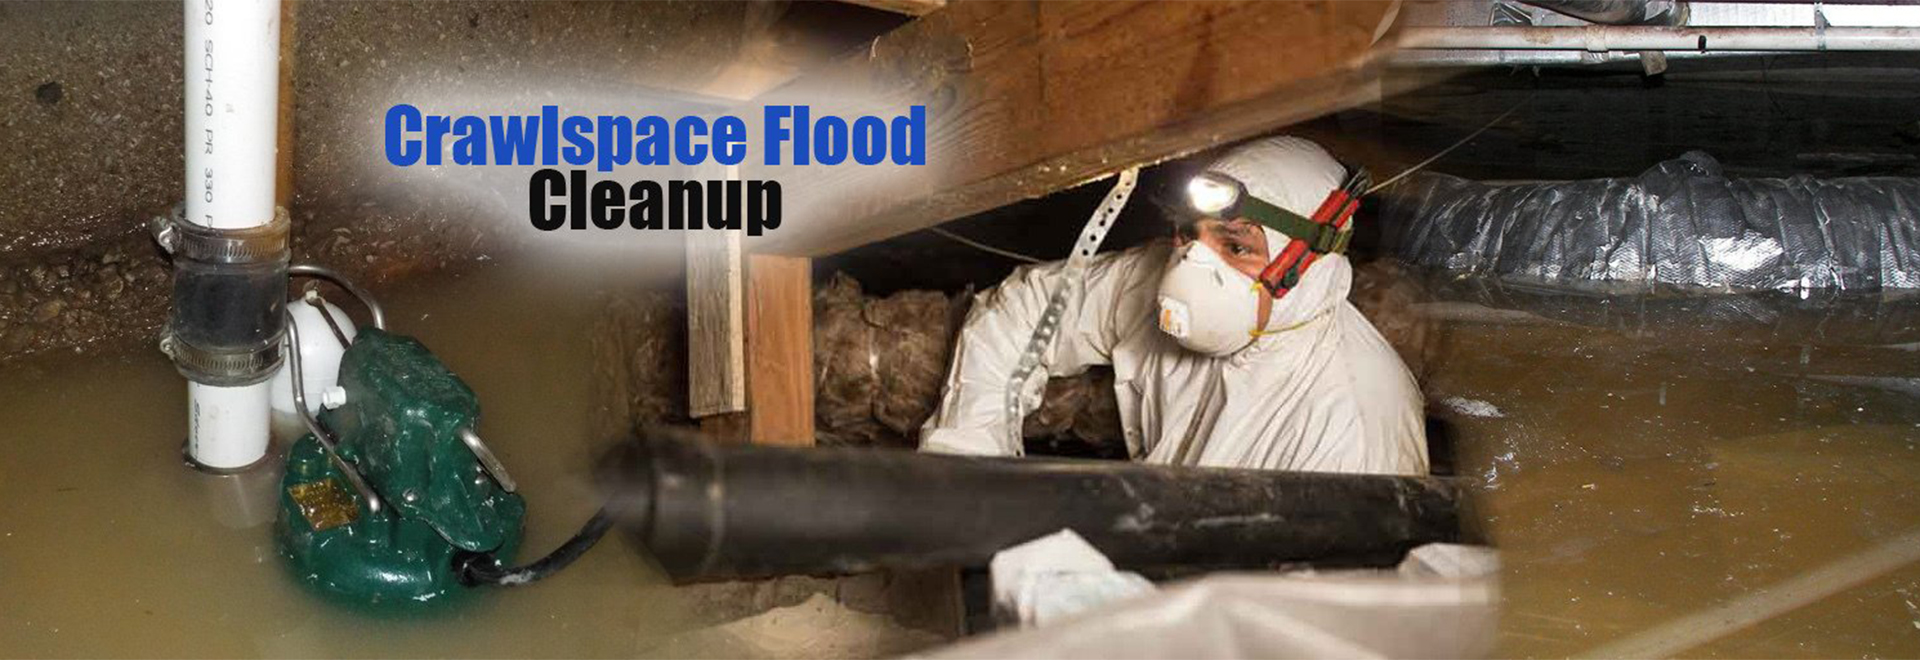 Crawlspace Flood Cleanup